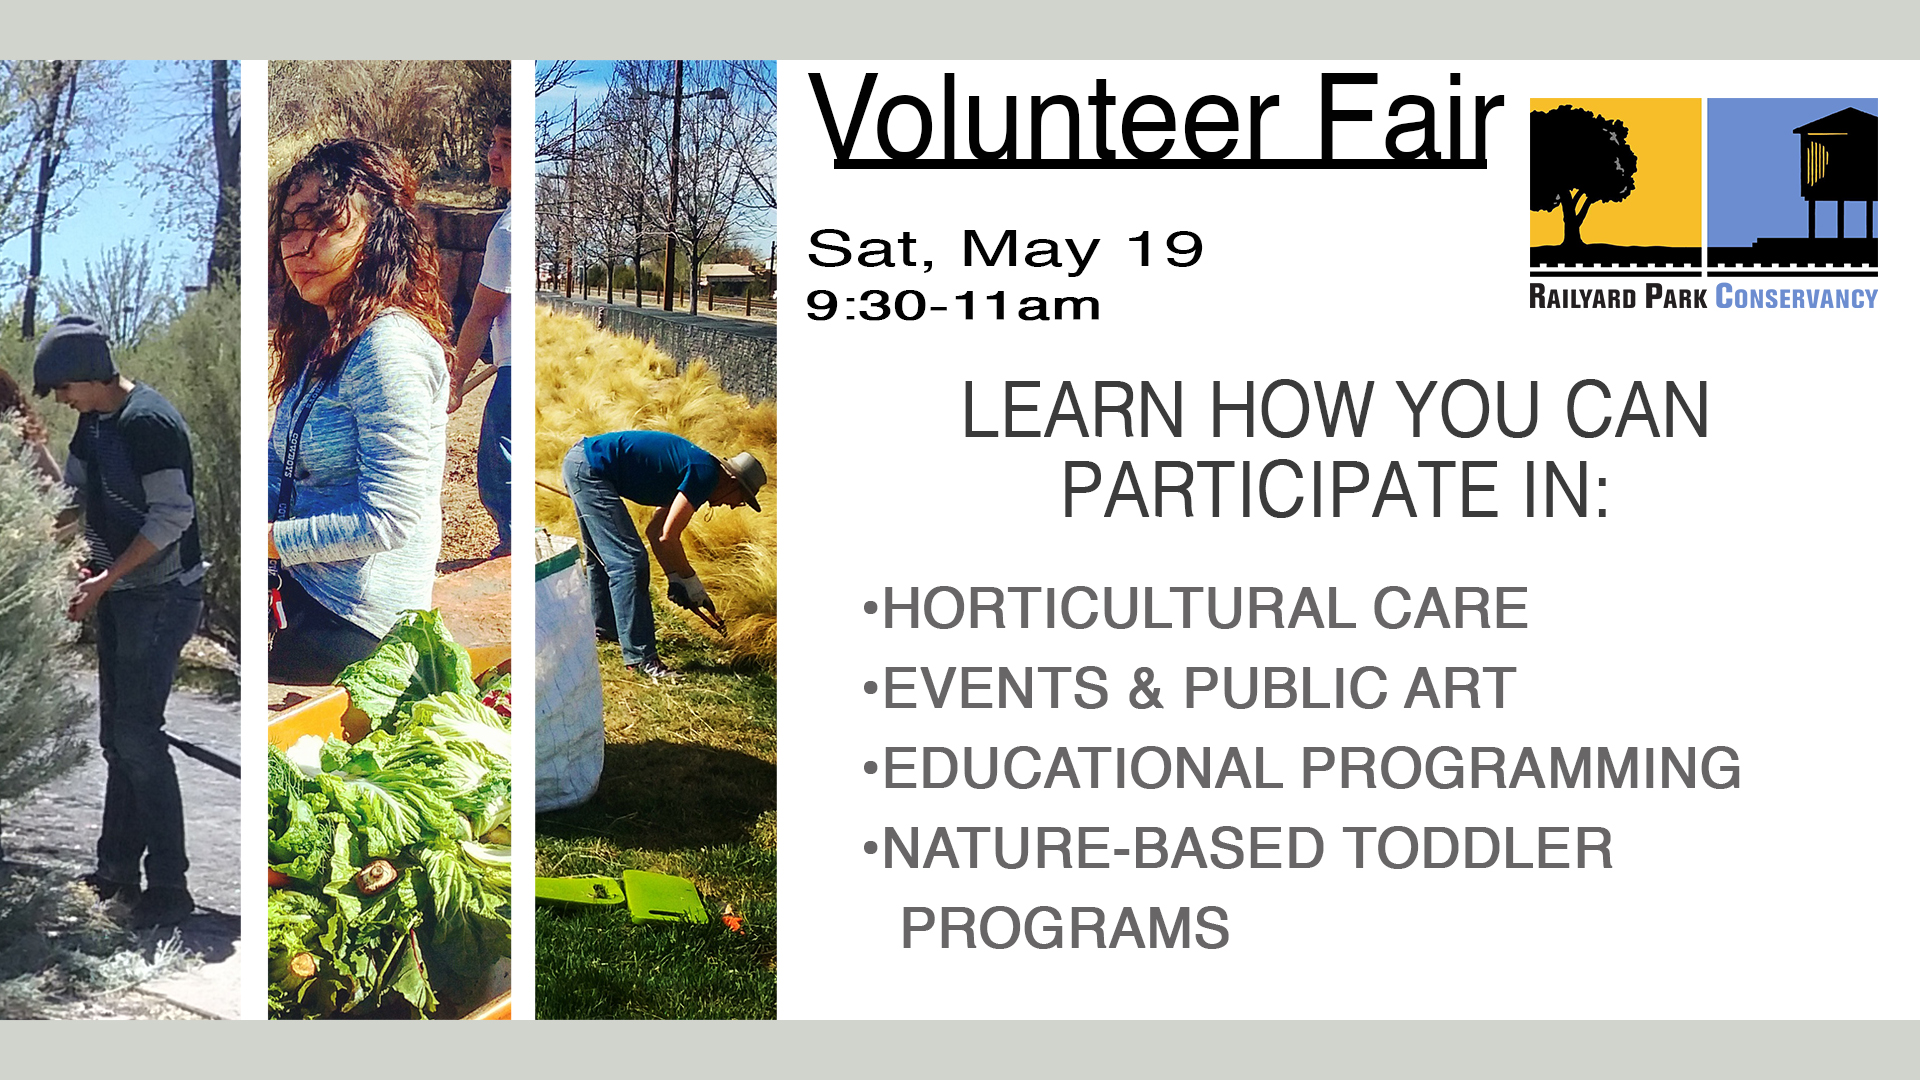 RAILYARD PARK VOLUNTEER FAIR @ Railyard Park Community Room | Santa Fe | New Mexico | United States